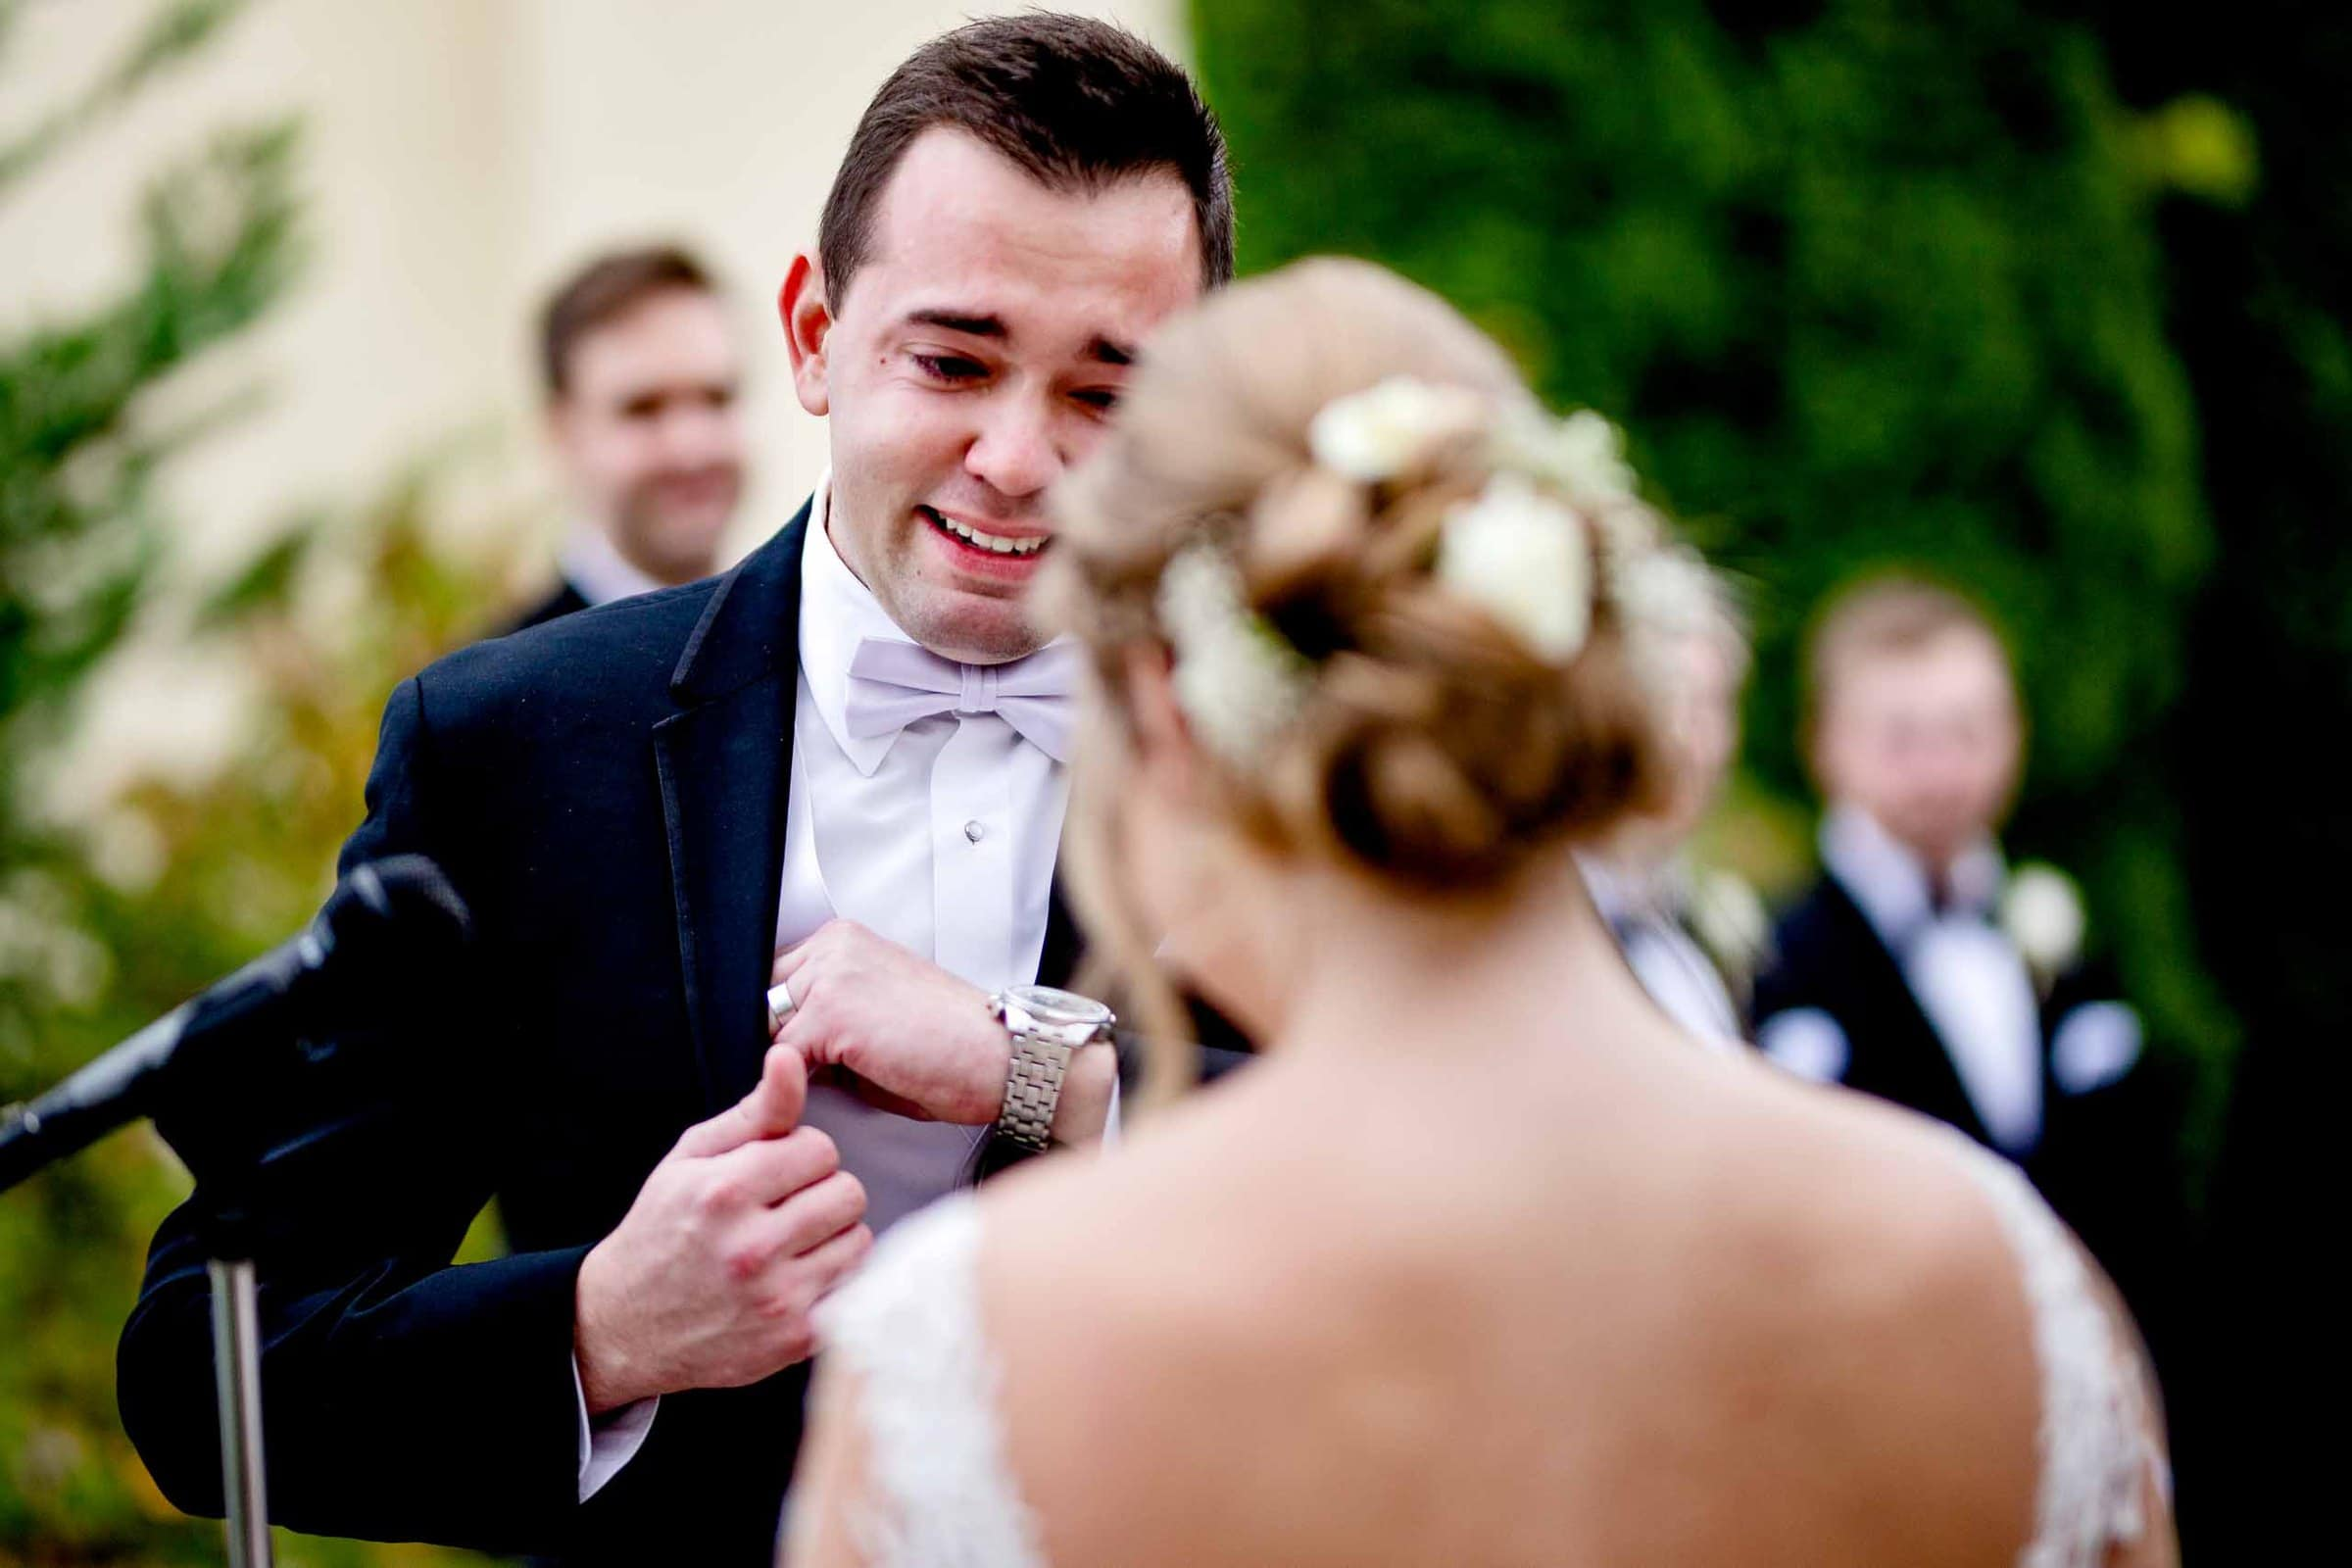 Emotional groom exchanging vows during their Columbia Gorge Hotel wedding ceremony